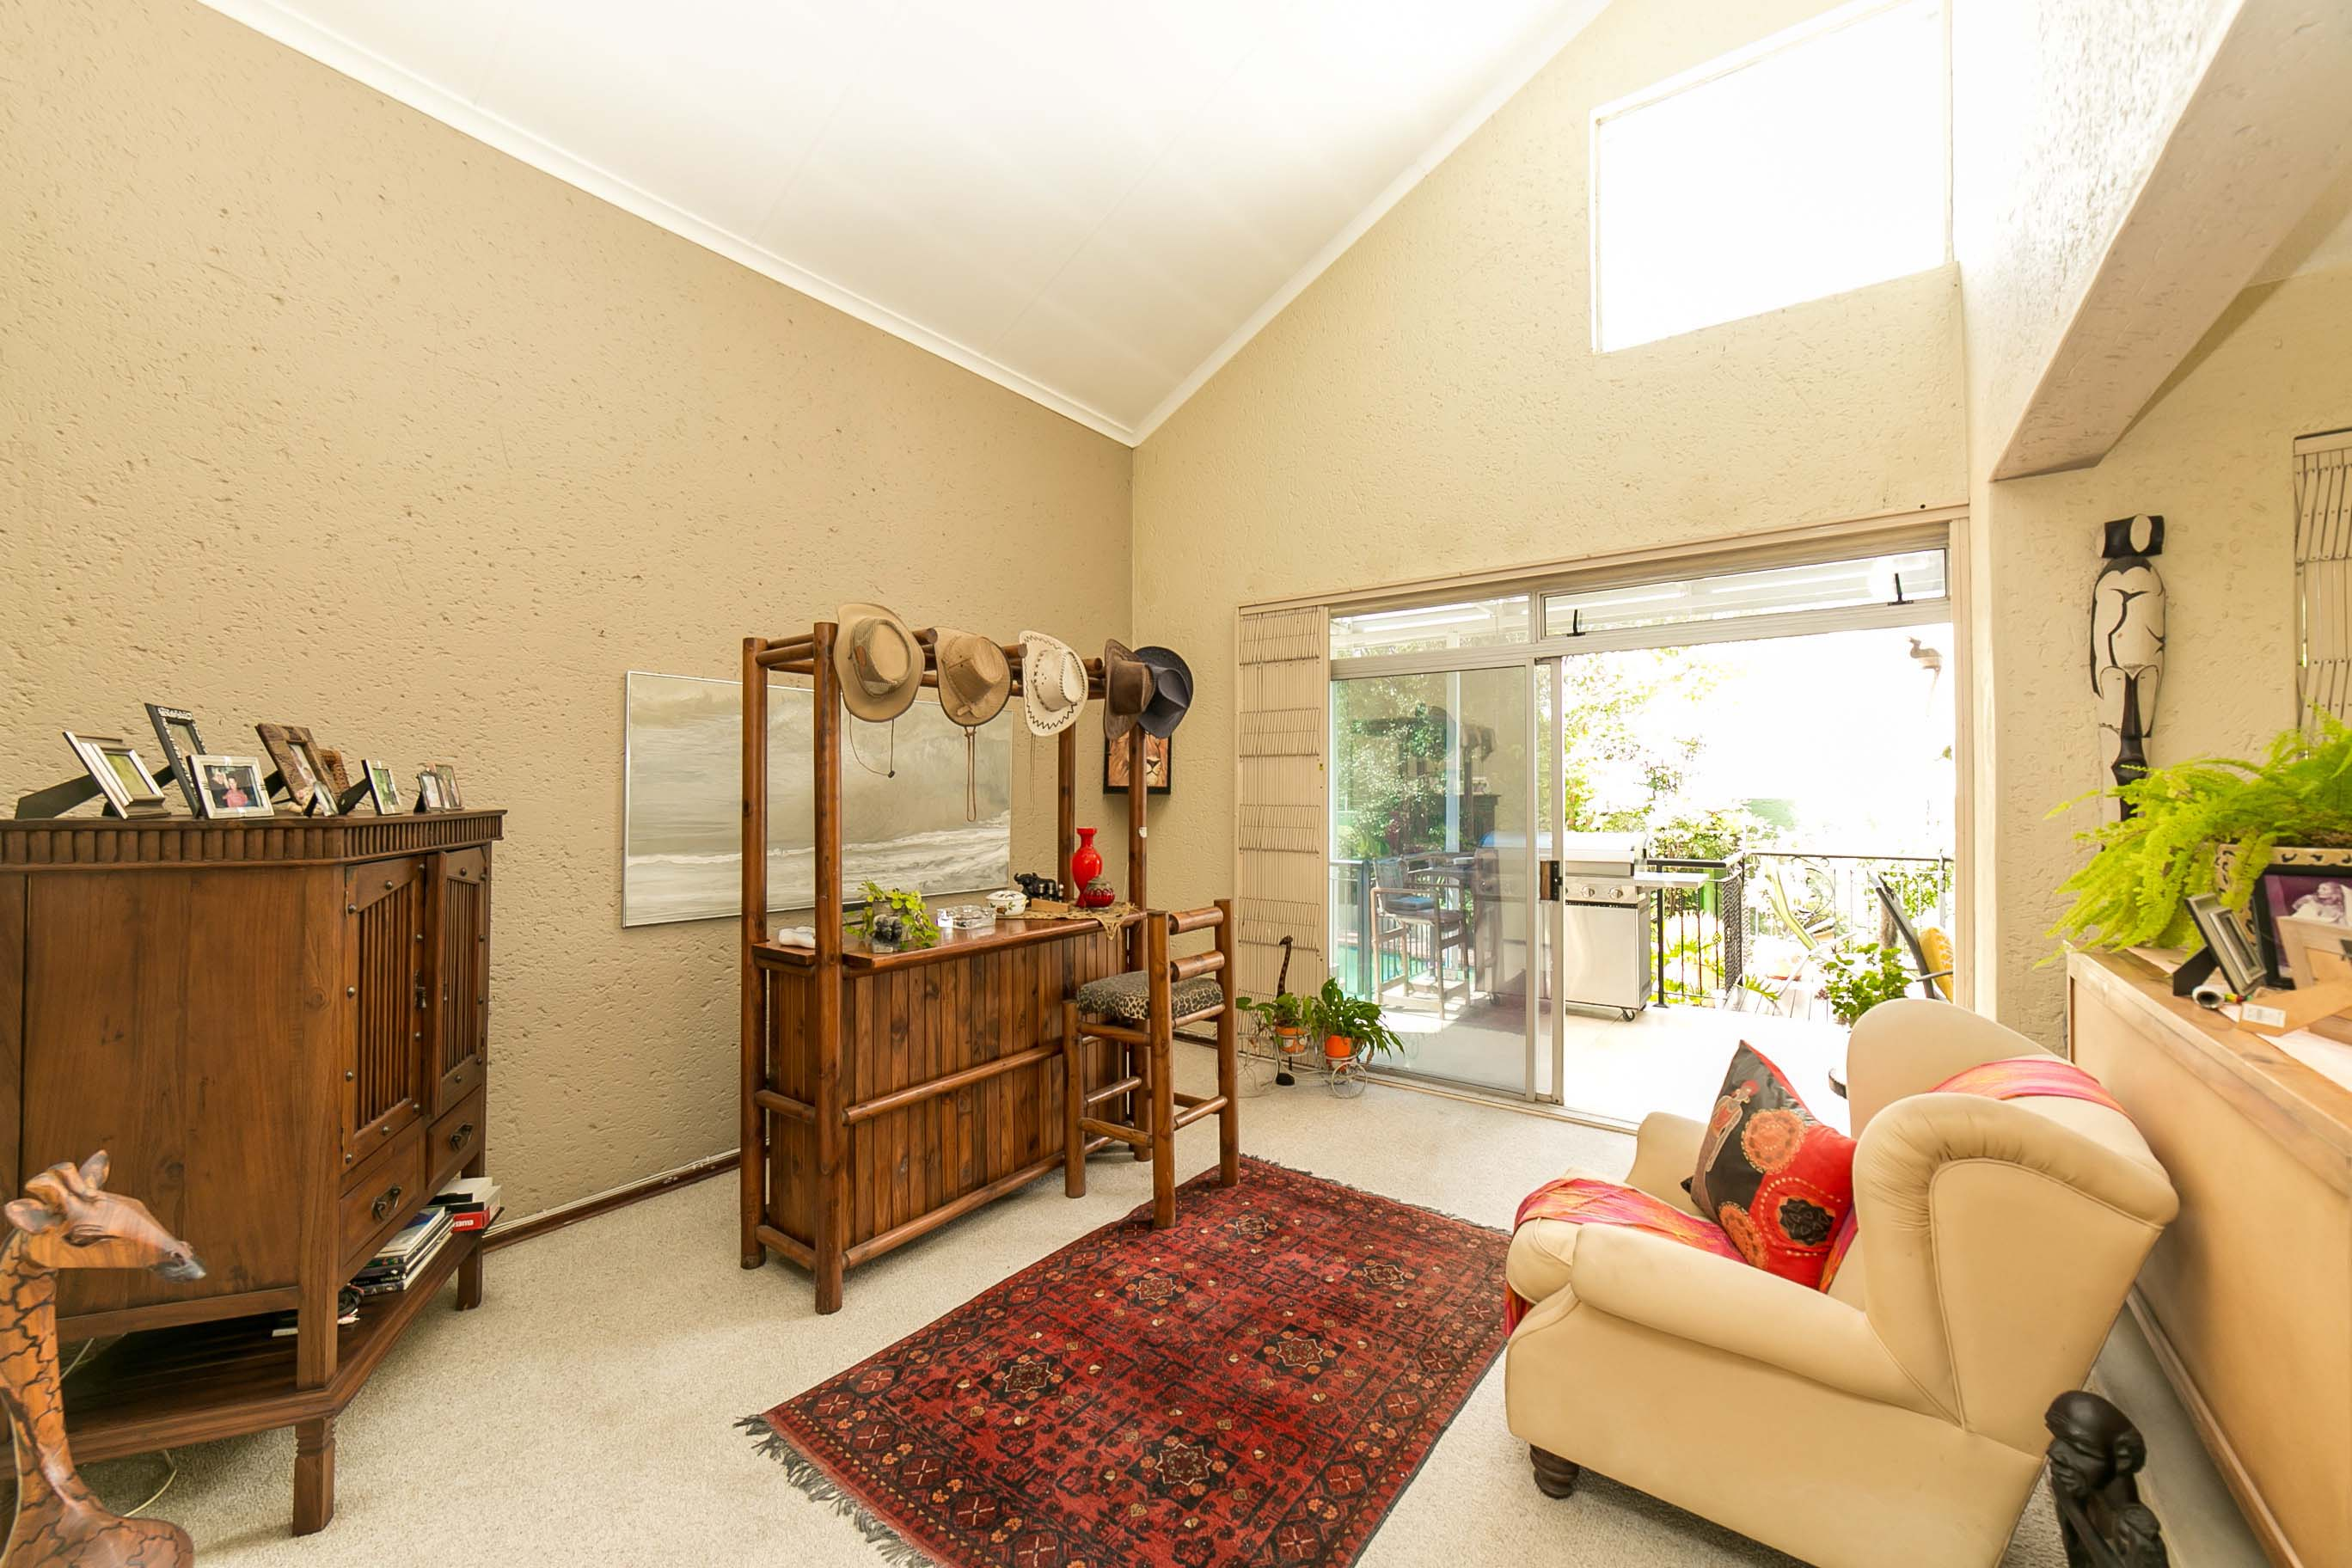 4 Bedroom House for sale in Lonehill ENT0082001 : photo#3